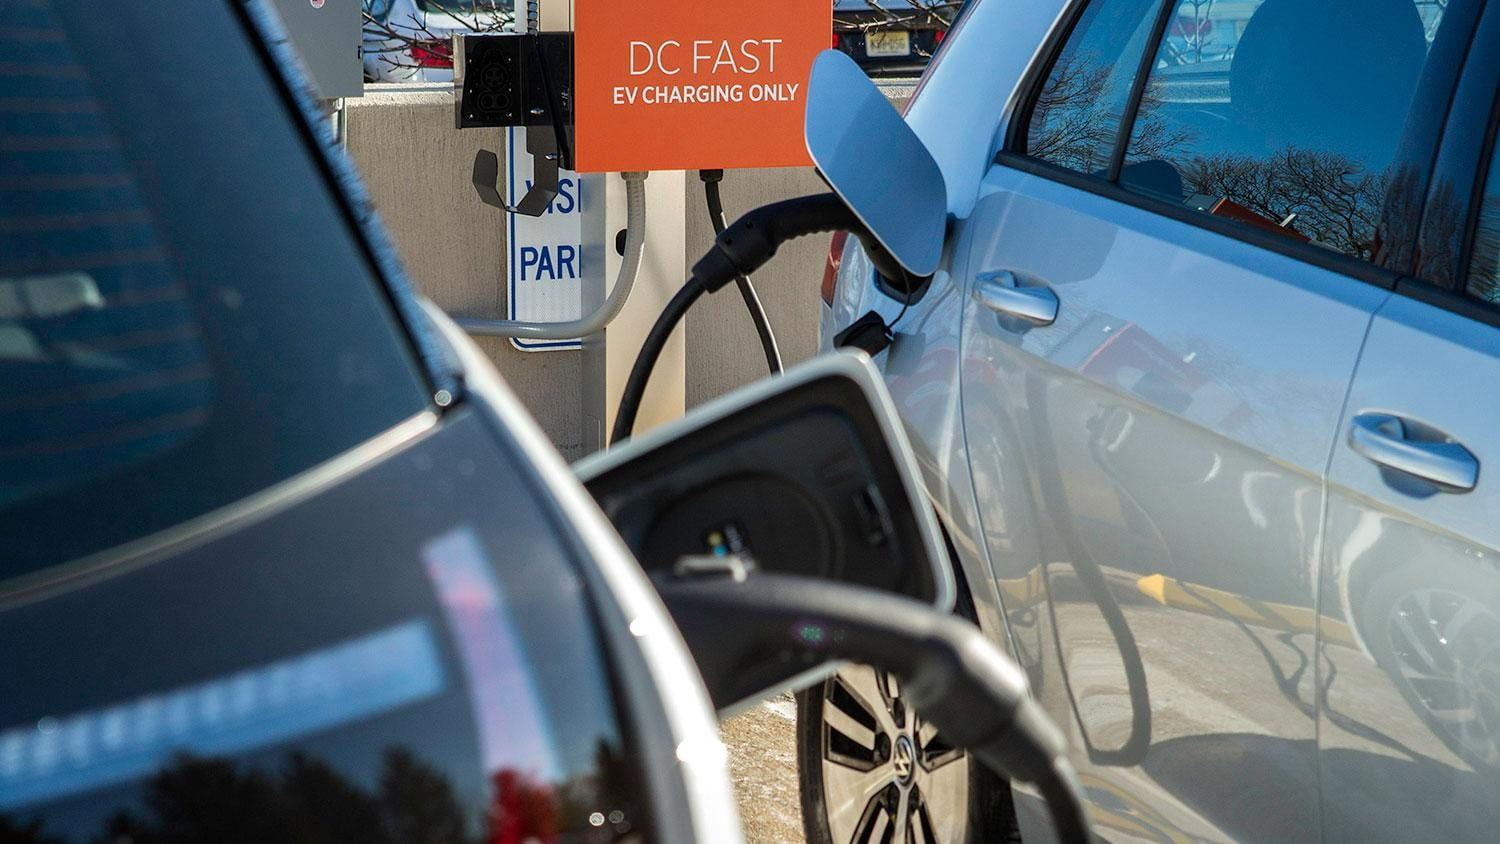 bmw vw and chargepoint create express charging corridors dc fast charge 243